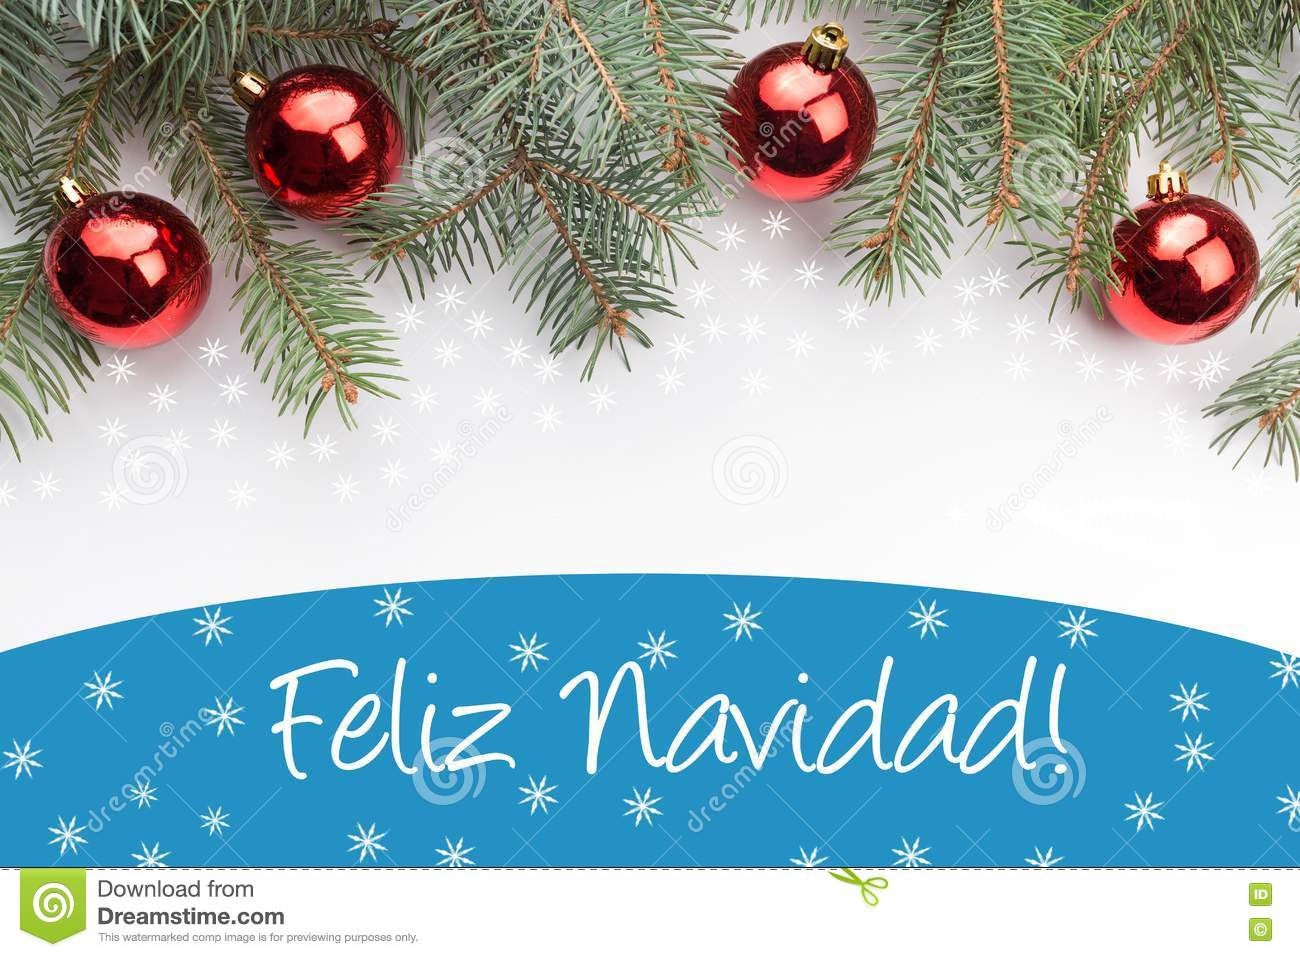 christmas decorations with the greeting feliz navidad in spanish